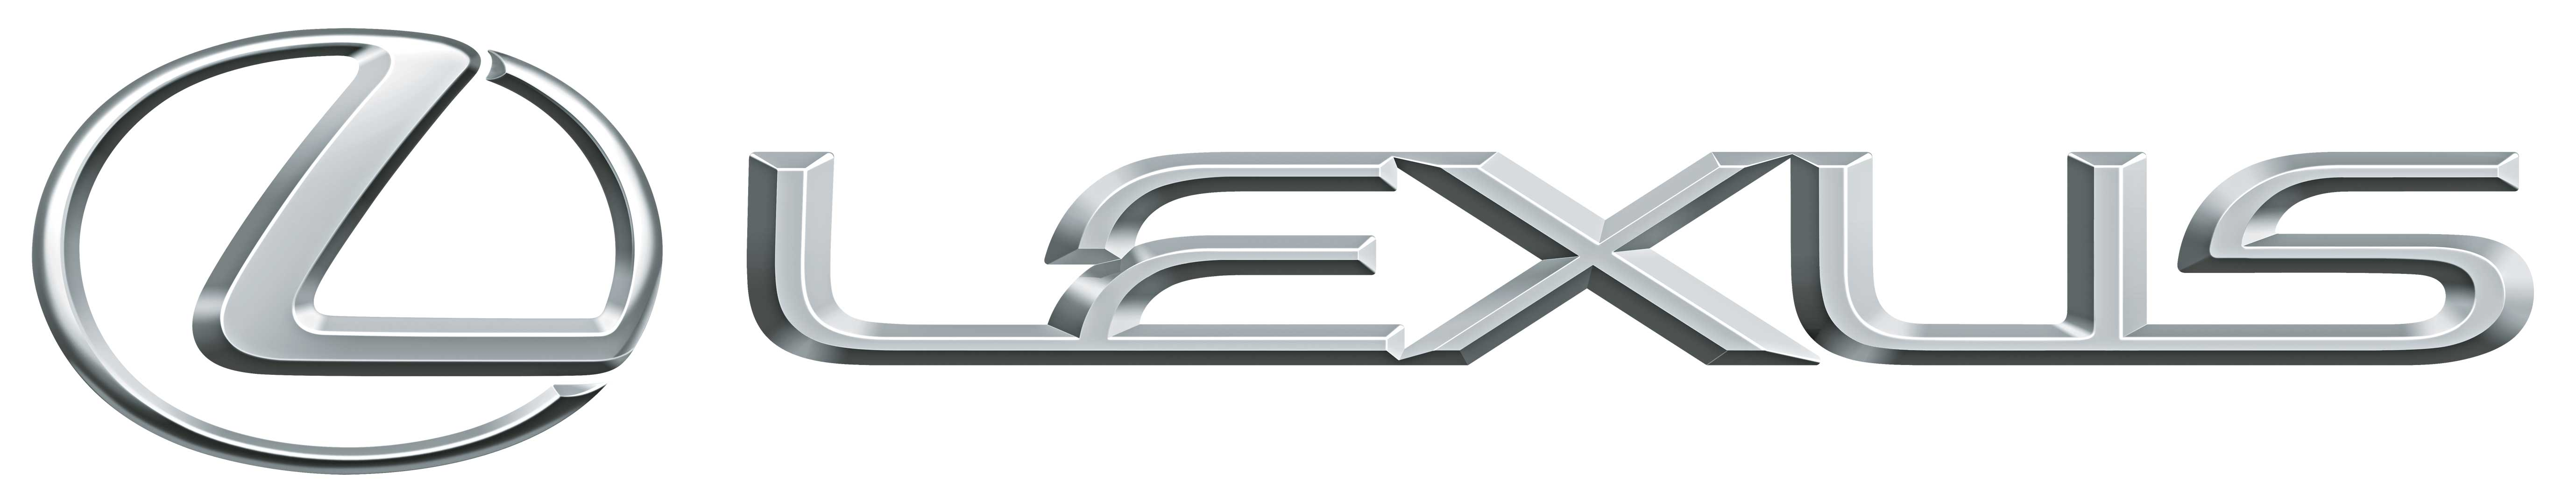 lexus-logo-tablet-wallpapers.jpg